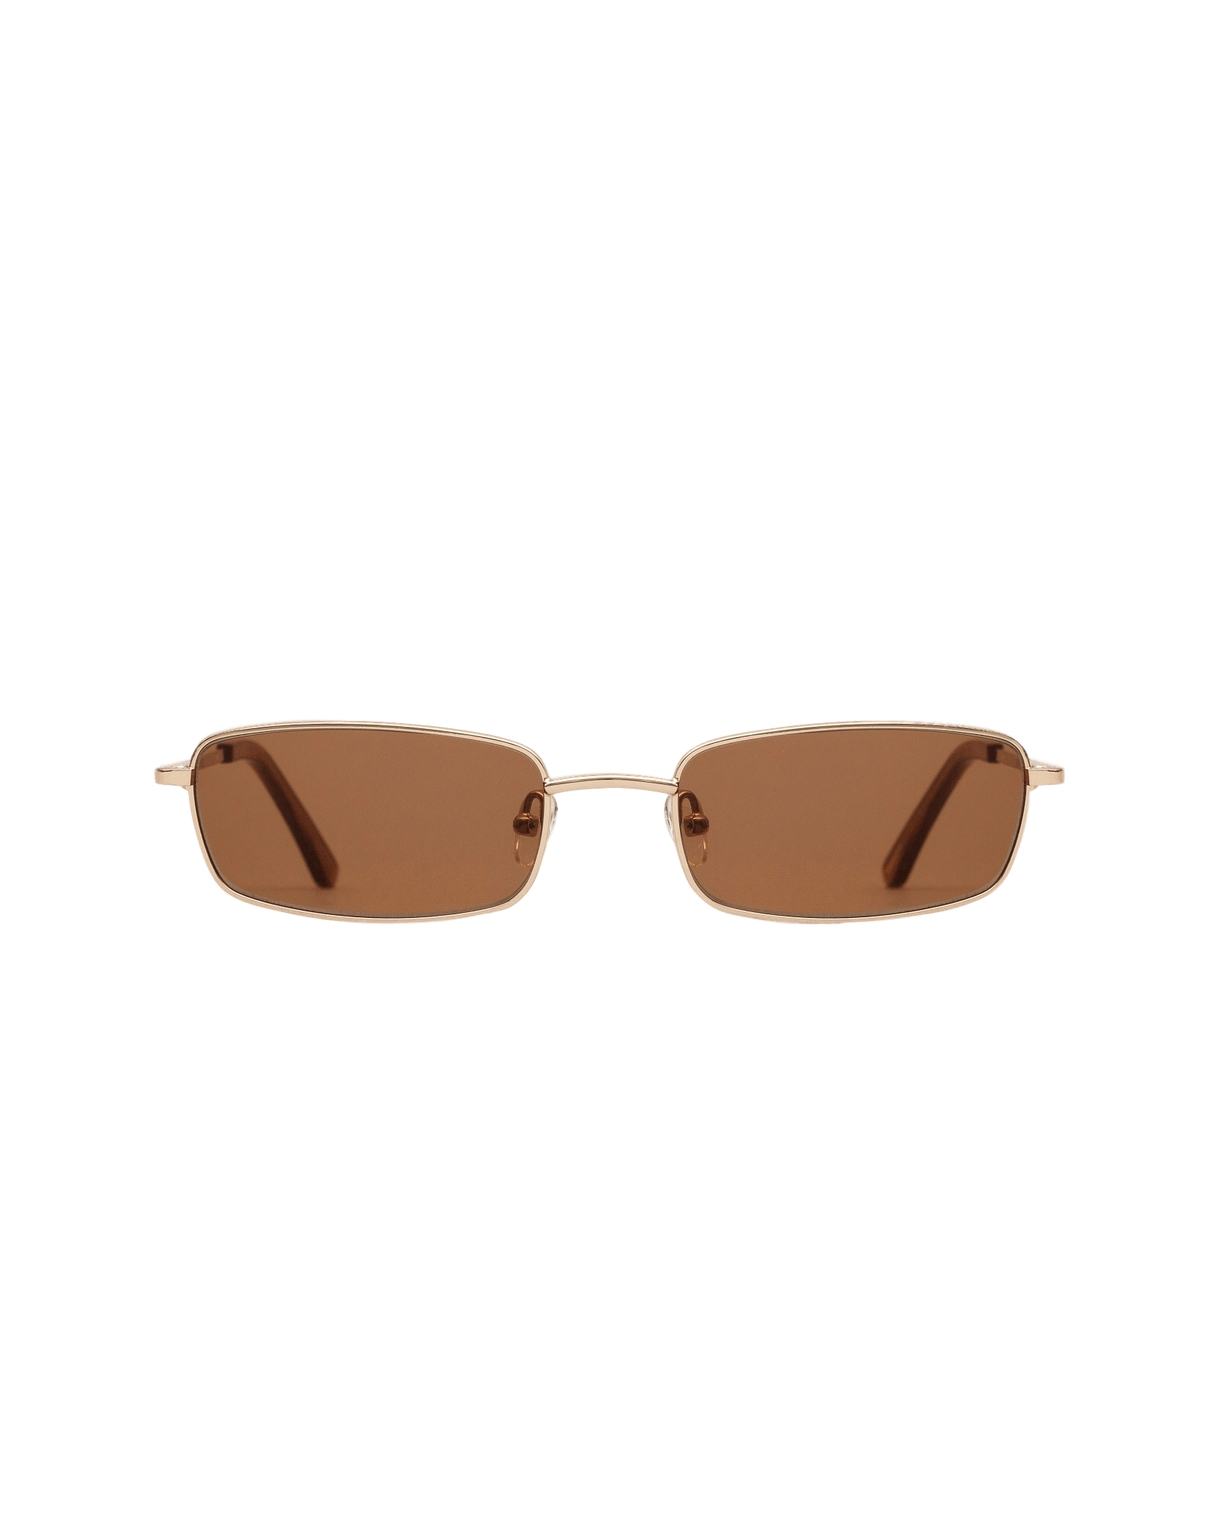 Olsen (Brown Lens) by Dmy by Dmy, available on dmybydmy.com for $120 Bella Hadid Sunglasses Exact Product